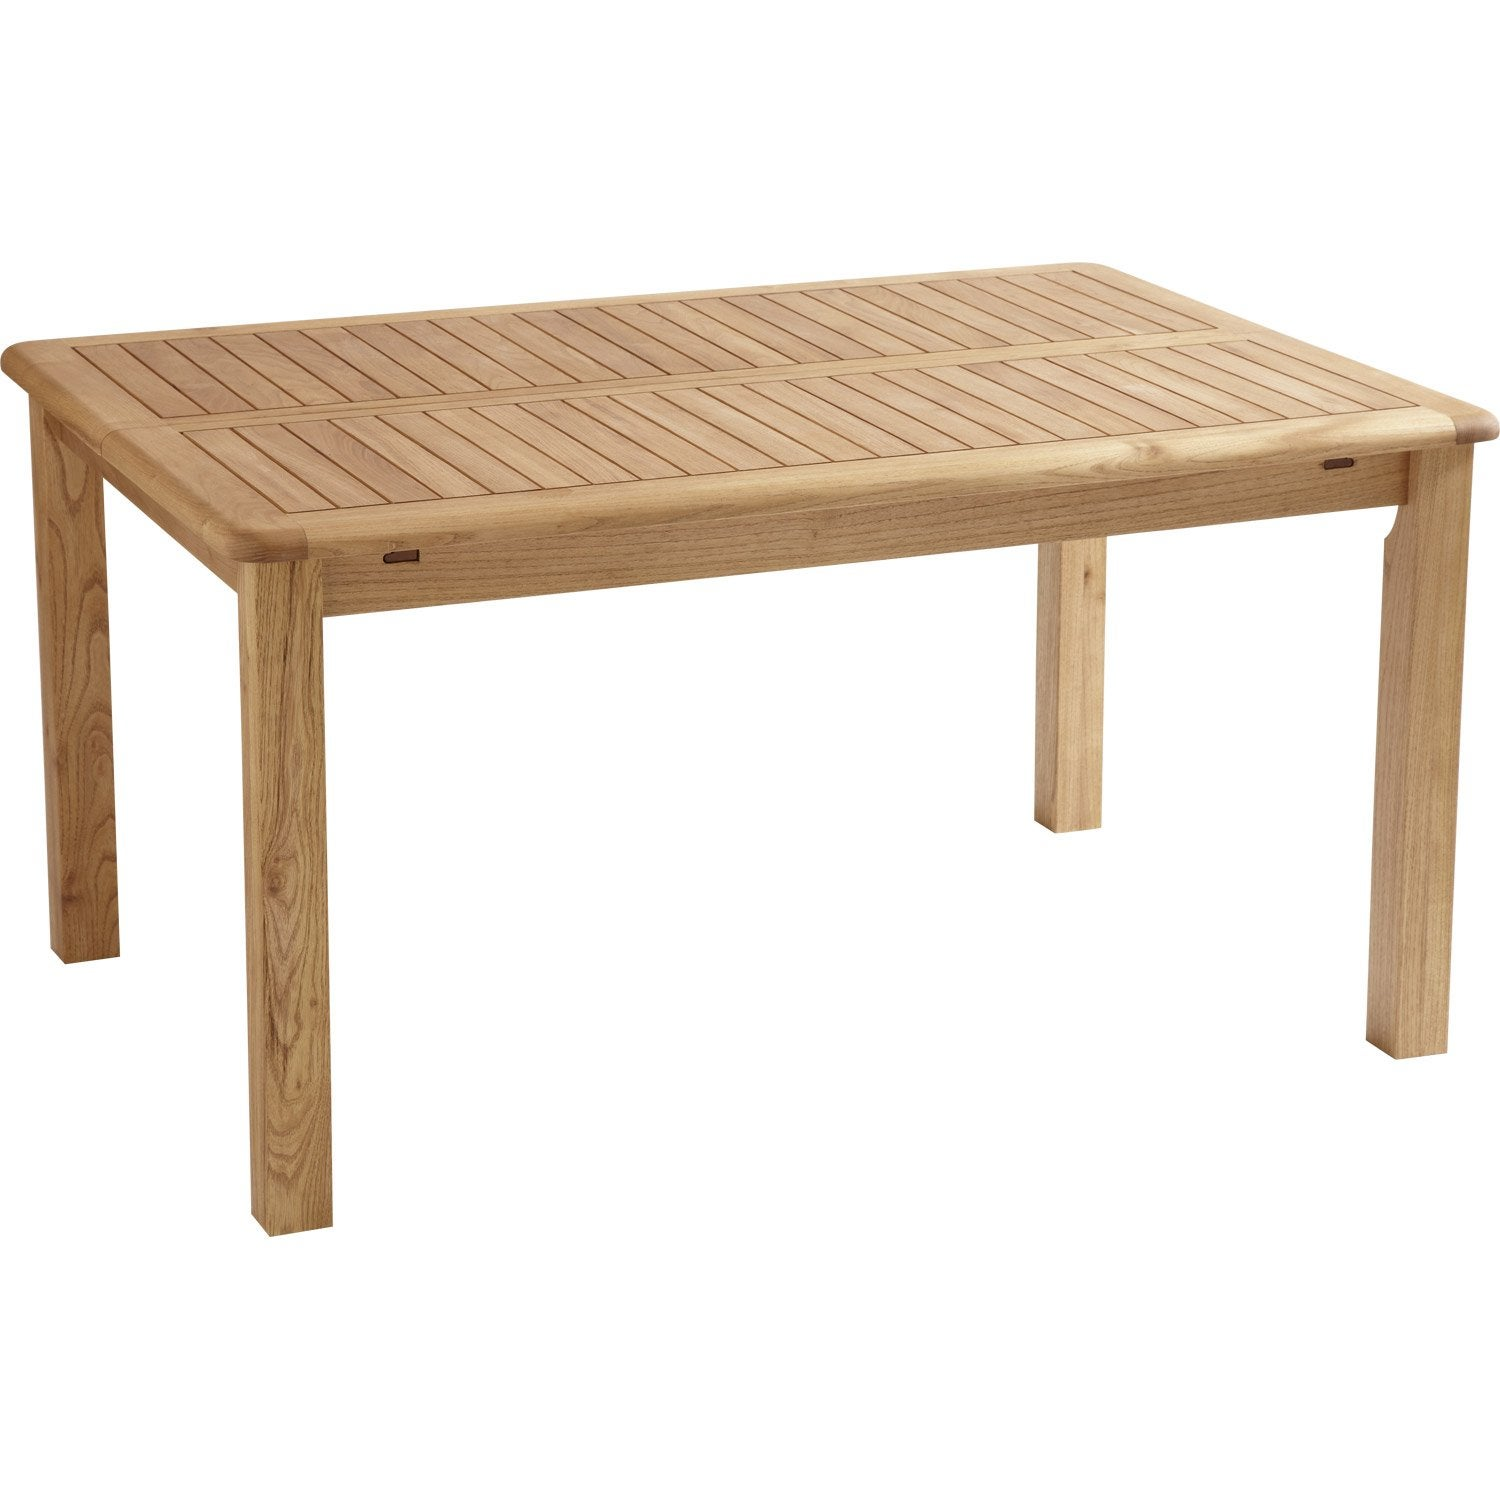 Table basse bois leroy merlin for Table de jardin 8 personnes